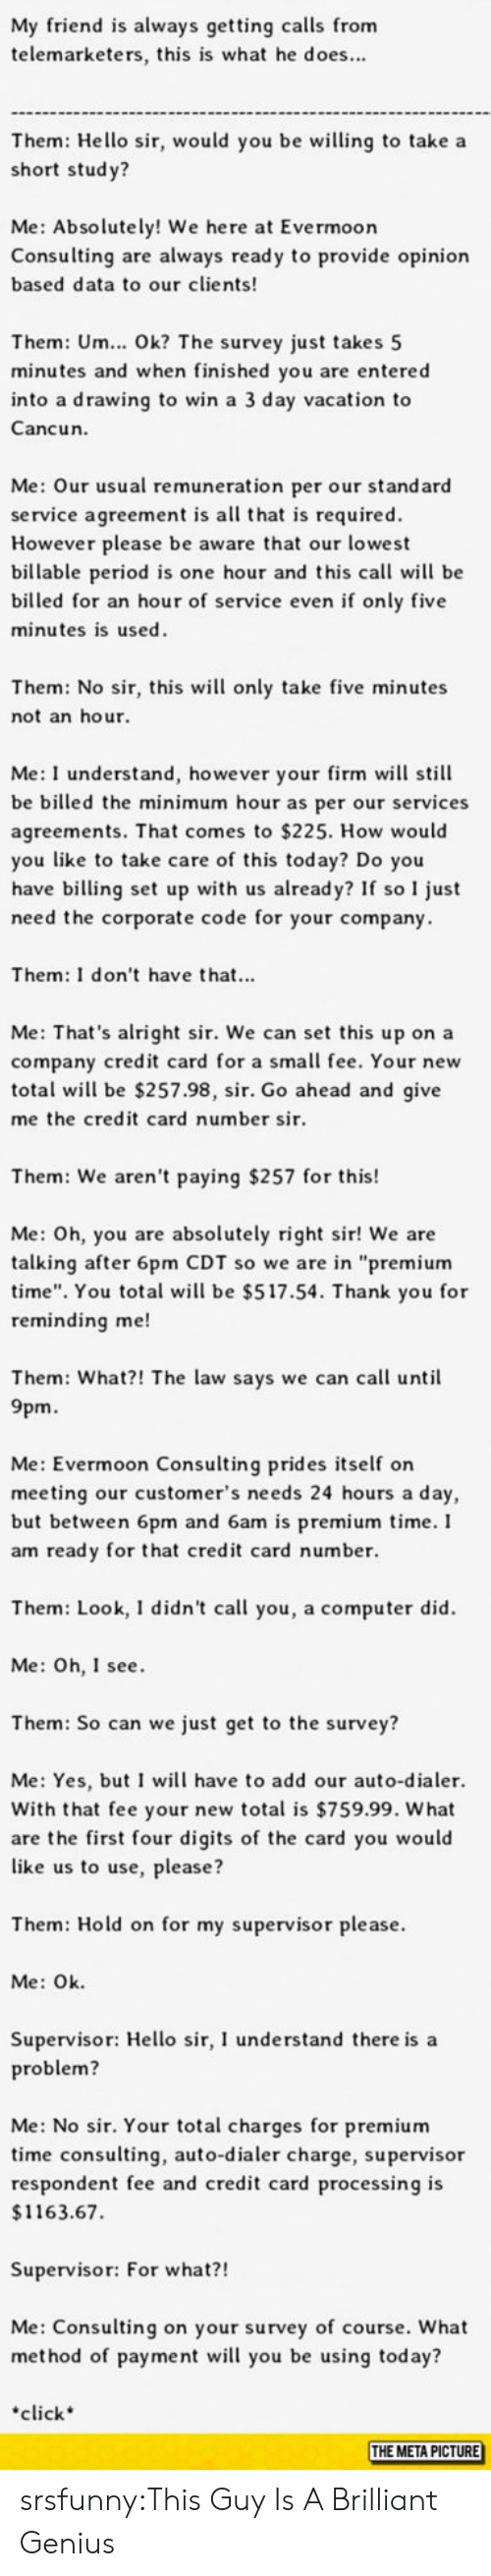 """We Here: My friend is always getting calls from  telemarketers, this is what he does...  Them: Hello sir, would you be wing to take a  short stud y?  Me: Absolutely! We here at Evermoor  Consulting are always ready to provide opinion  based data to our clients  Them: Um... Ok? The survey just takes 5  minutes and when finished you are entered  into a drawing to win a 3 day vacation to  Cancun.  Me: Our usual remuneration per our standard  service agreement is all that is required  However please be aware that our lowest  billable period is one hour and this call will be  billed for an hour of service even if only five  minutes is used  Them: No sir, this wil only take five minutes  not an hour  Me: I understand, however your firm will still  be billed the minimum hour as per our services  agreements. That comes to $225. How would  you like to take care of this today? Do you  have billing set up with us already? If so I just  need the corporate code for your company  Them: I don't have that...  Me: That's alright sir. We can set this up on a  company credit card for a small fee. Your new  total wil be $257.98, sir. Go ahead and give  me the credit card number sir  Them: We aren't paying $257 for this!  Me: Oh, you are absolutely right sir! We are  talking after 6pm CDT so we are in """"premium  time"""". You total wil be $517.54. Thank you for  reminding me!  Them: What?! The law says we can call until  9pm.  Me: Evermoon Consulting prides self on  meeting our customer's needs 24 hours a day,  but between 6pm and 6am is premium time.I  am ready for that credit card number.  Them: Look, I didn't call you, a computer did  Me: Oh, I see  Them: So can we just get to the survey?  Me: Yes, but I will have to add our auto-dialer.  With that fee your new total is $759.99. What  are the first four digits of the card you would  like us to use, please?  Them: Hold on for my supervisor please.  Me: Ok  Supervisor: Hello sir, I understand there is a  roblem?  Me: No sir. Your total cha"""